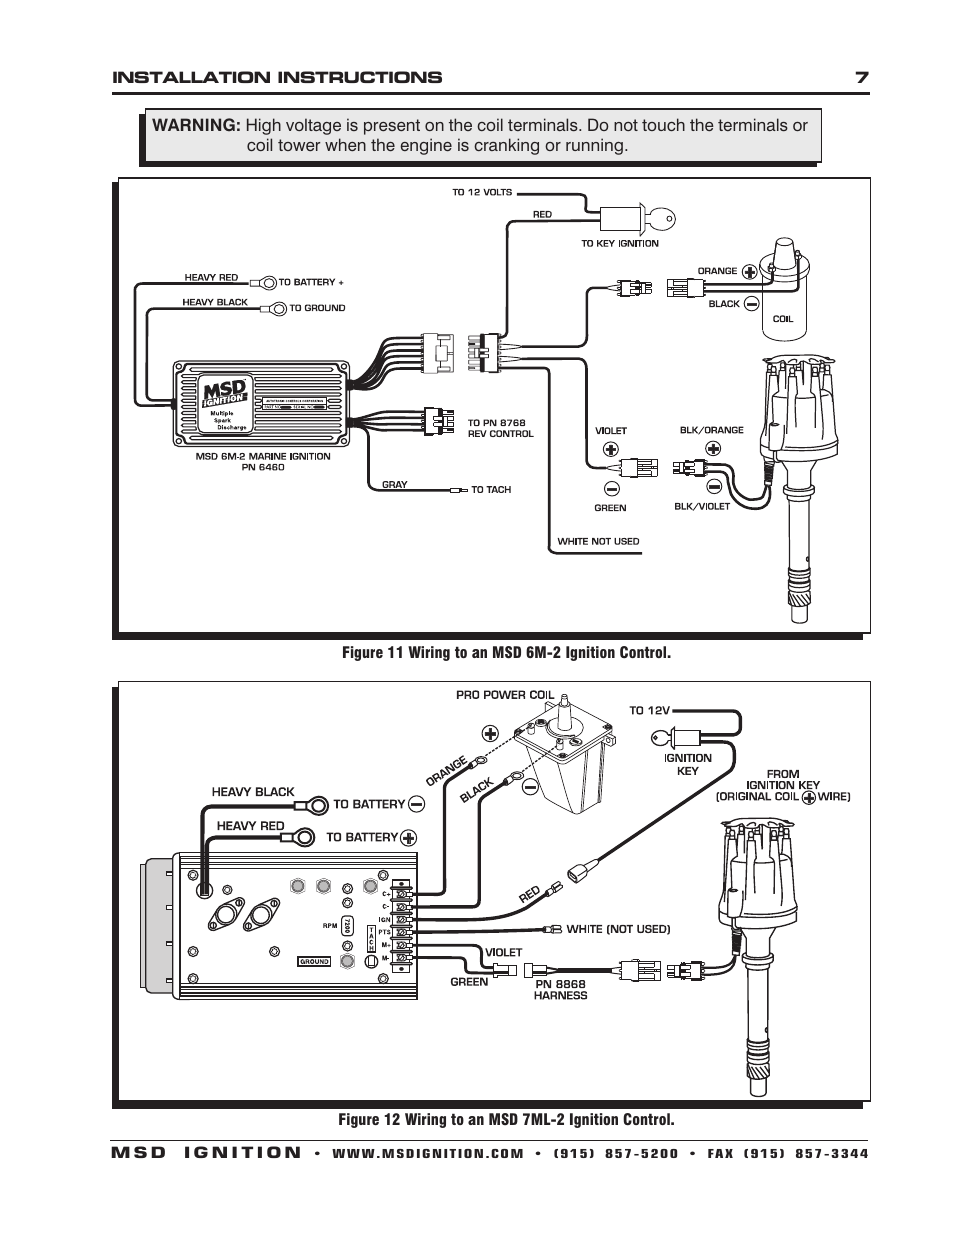 Kc Hilites Wiring Diagram Diagrams Daylighter For Piaa Hella Lights